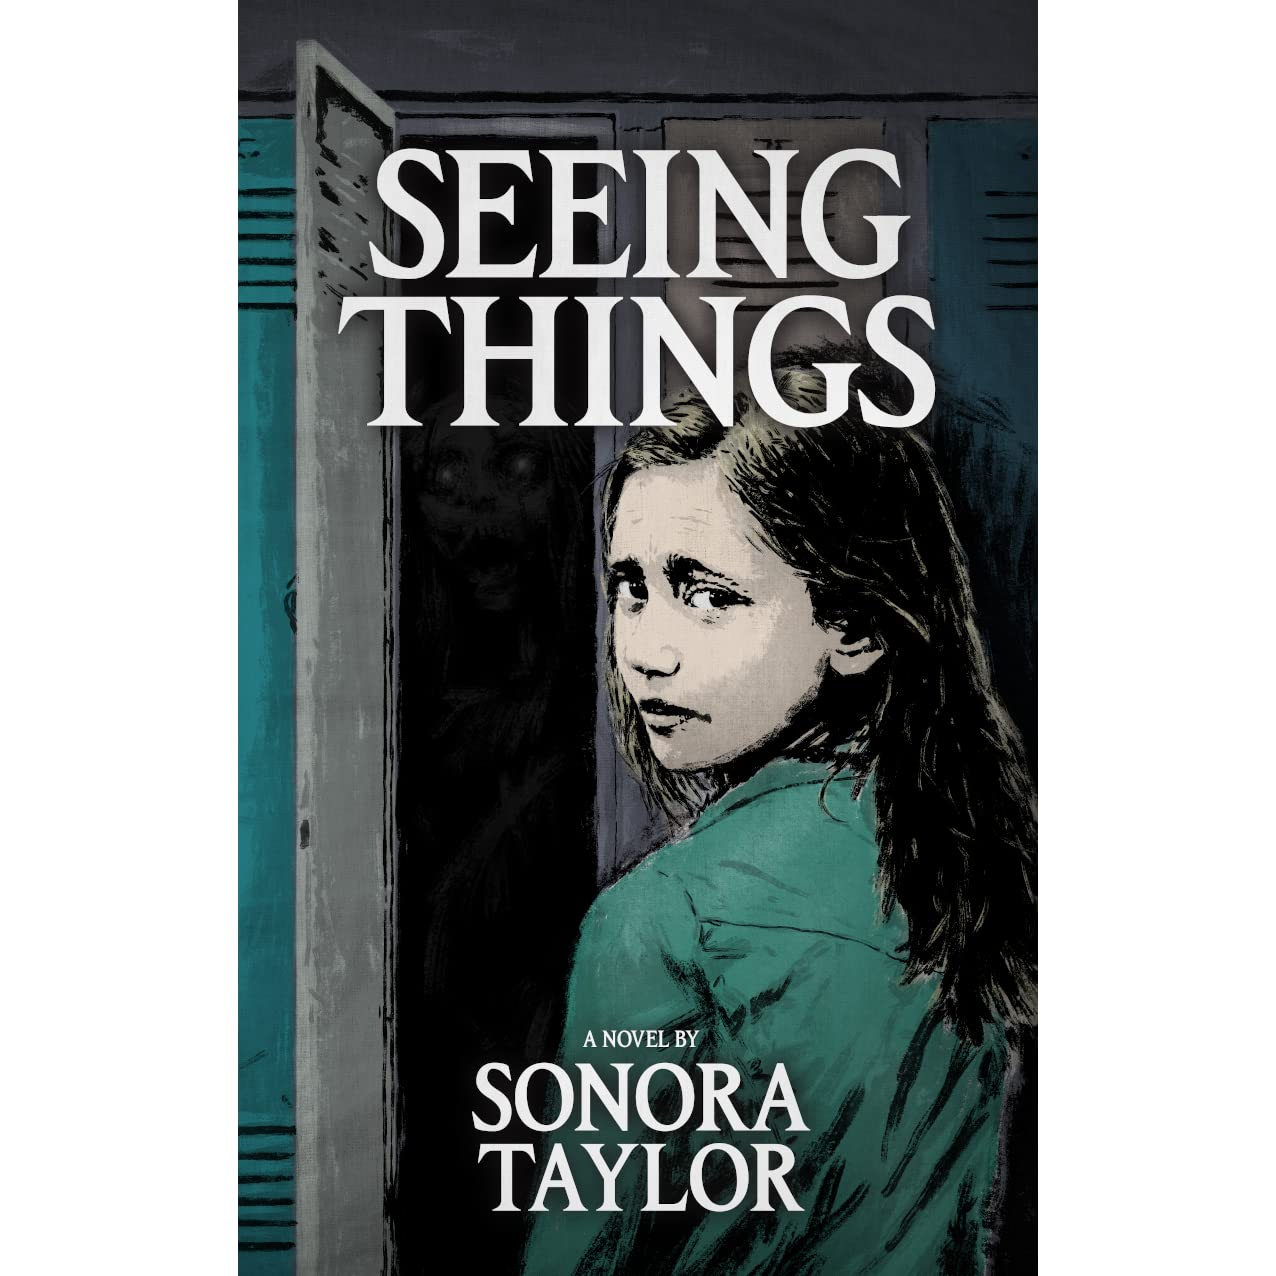 A Novel Seeing Things